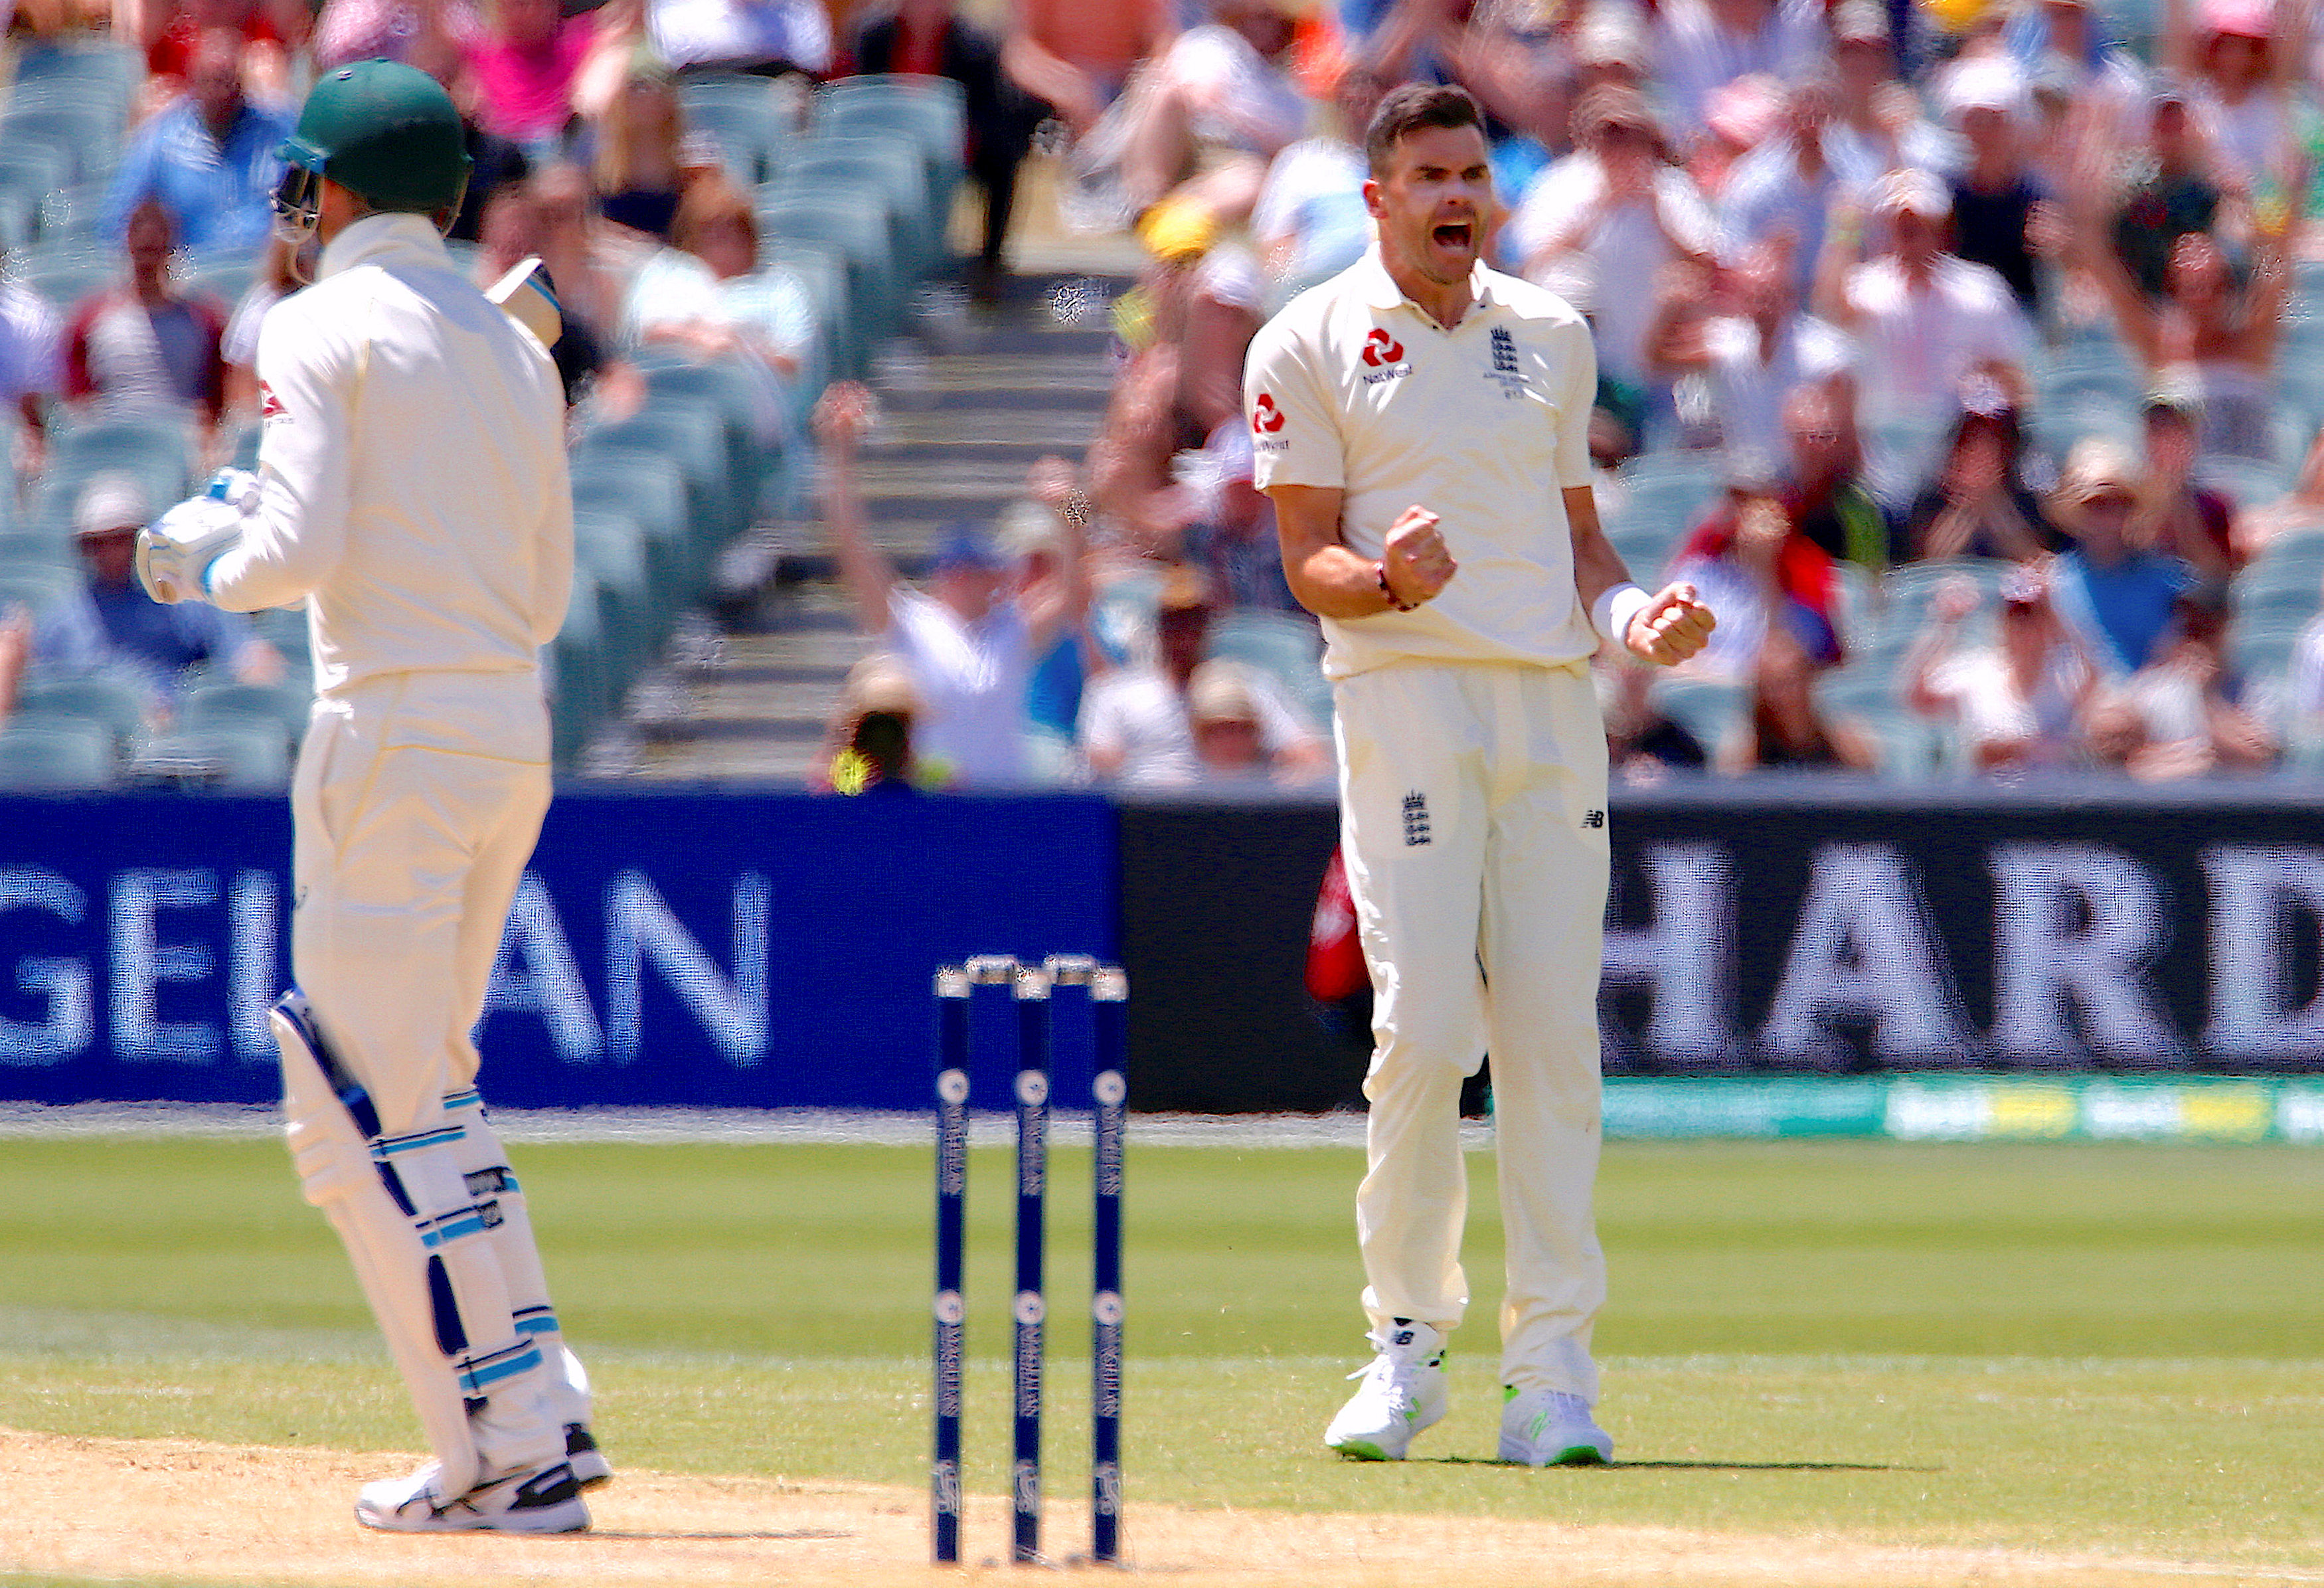 England must show hunger and belief to win, says Anderson